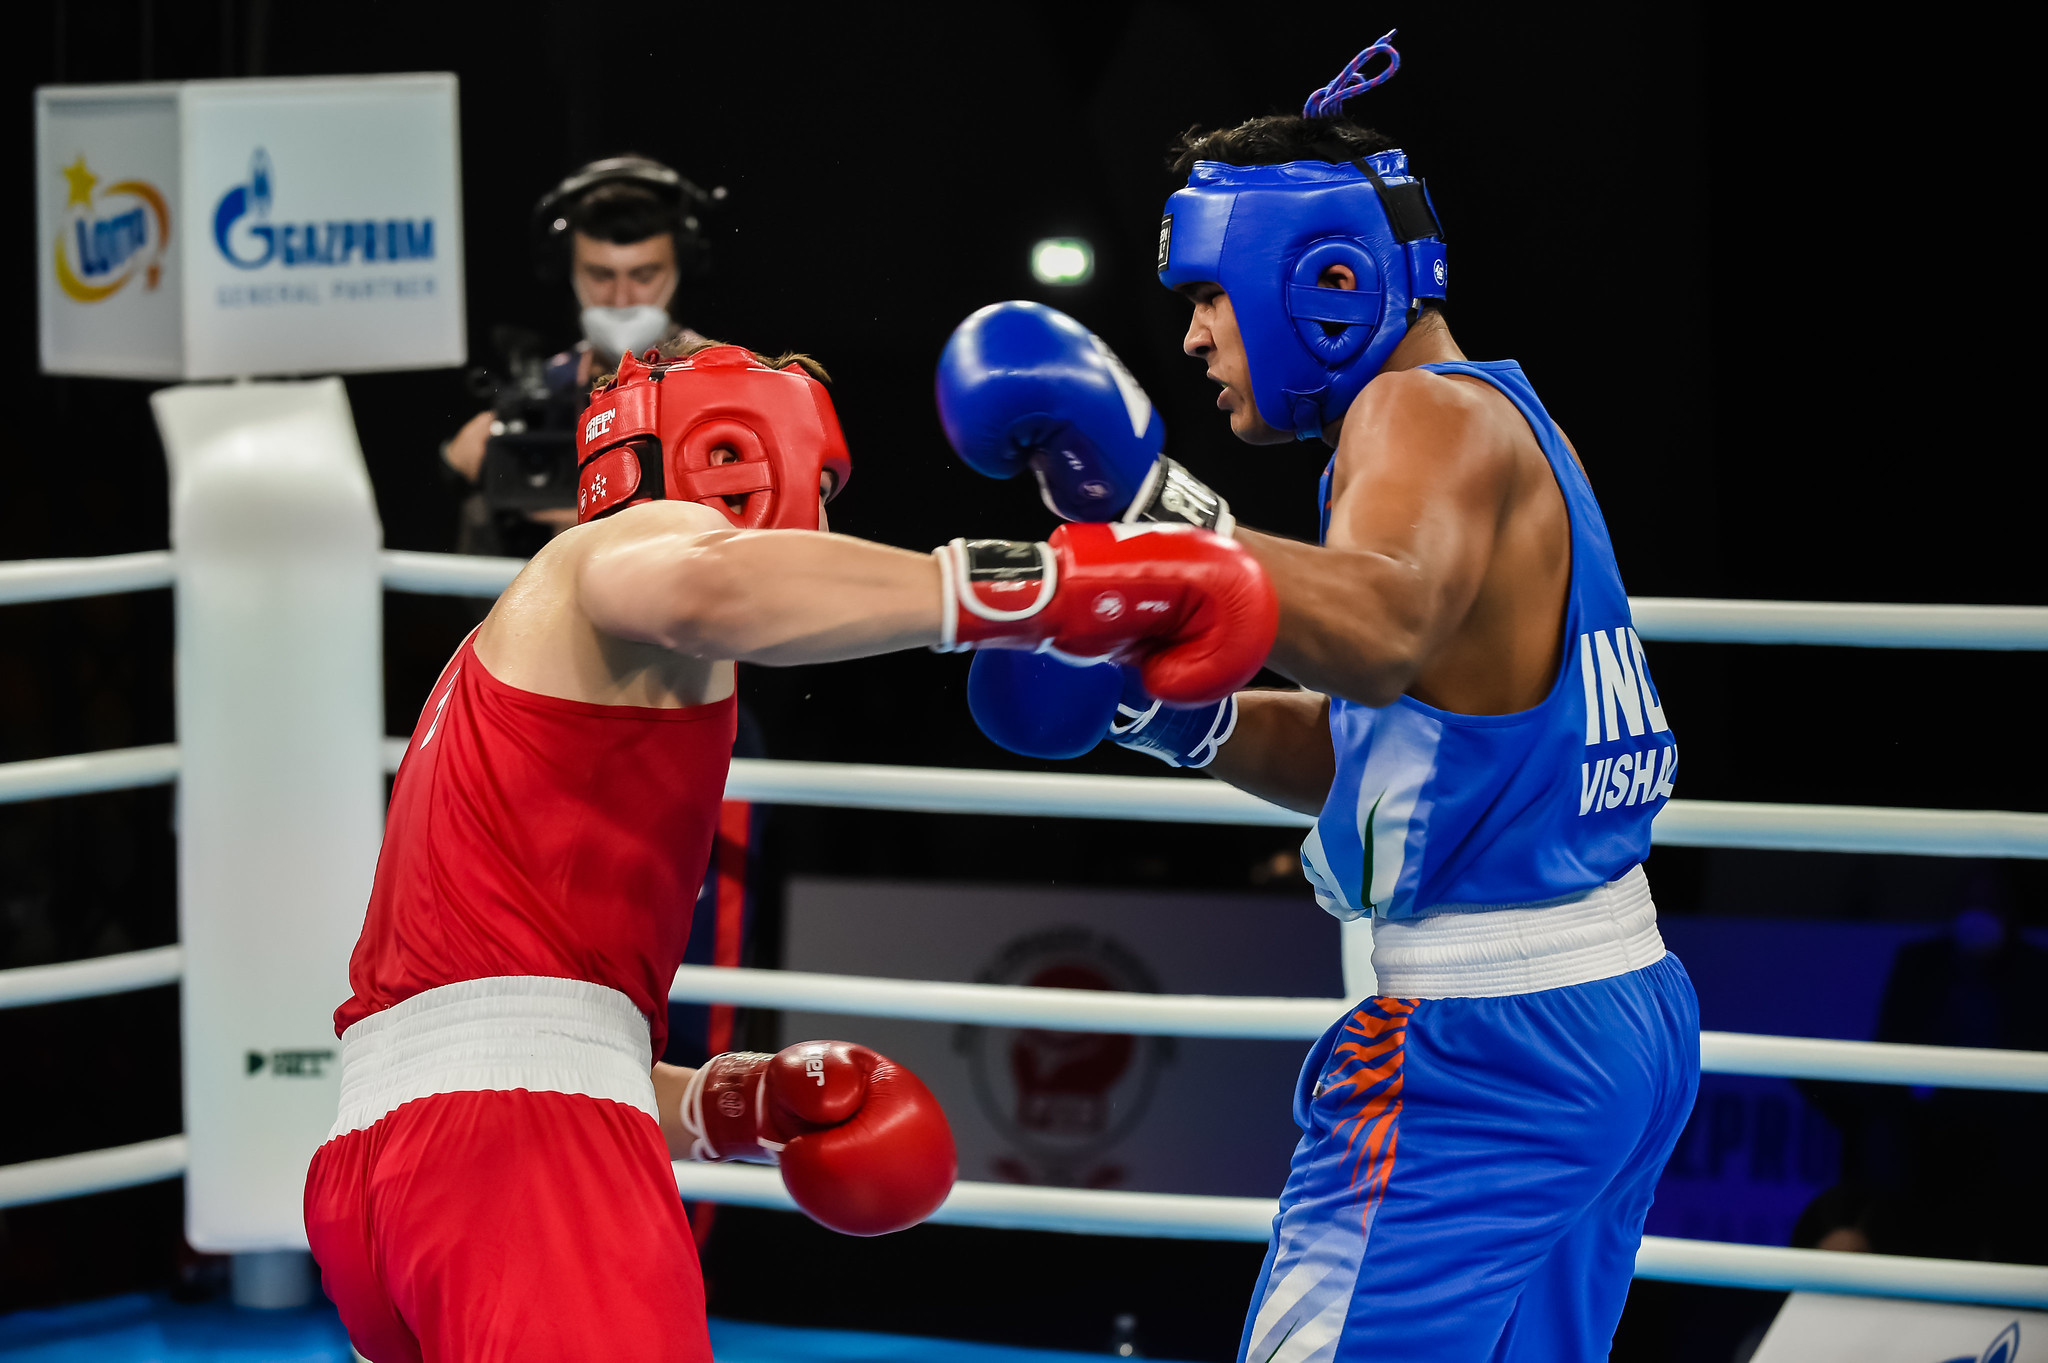 Vishal Gupta, in blue, was one of them in the men's 91kg heavyweight division, beating Kazakhstan's Madi Amirov ©AIBA